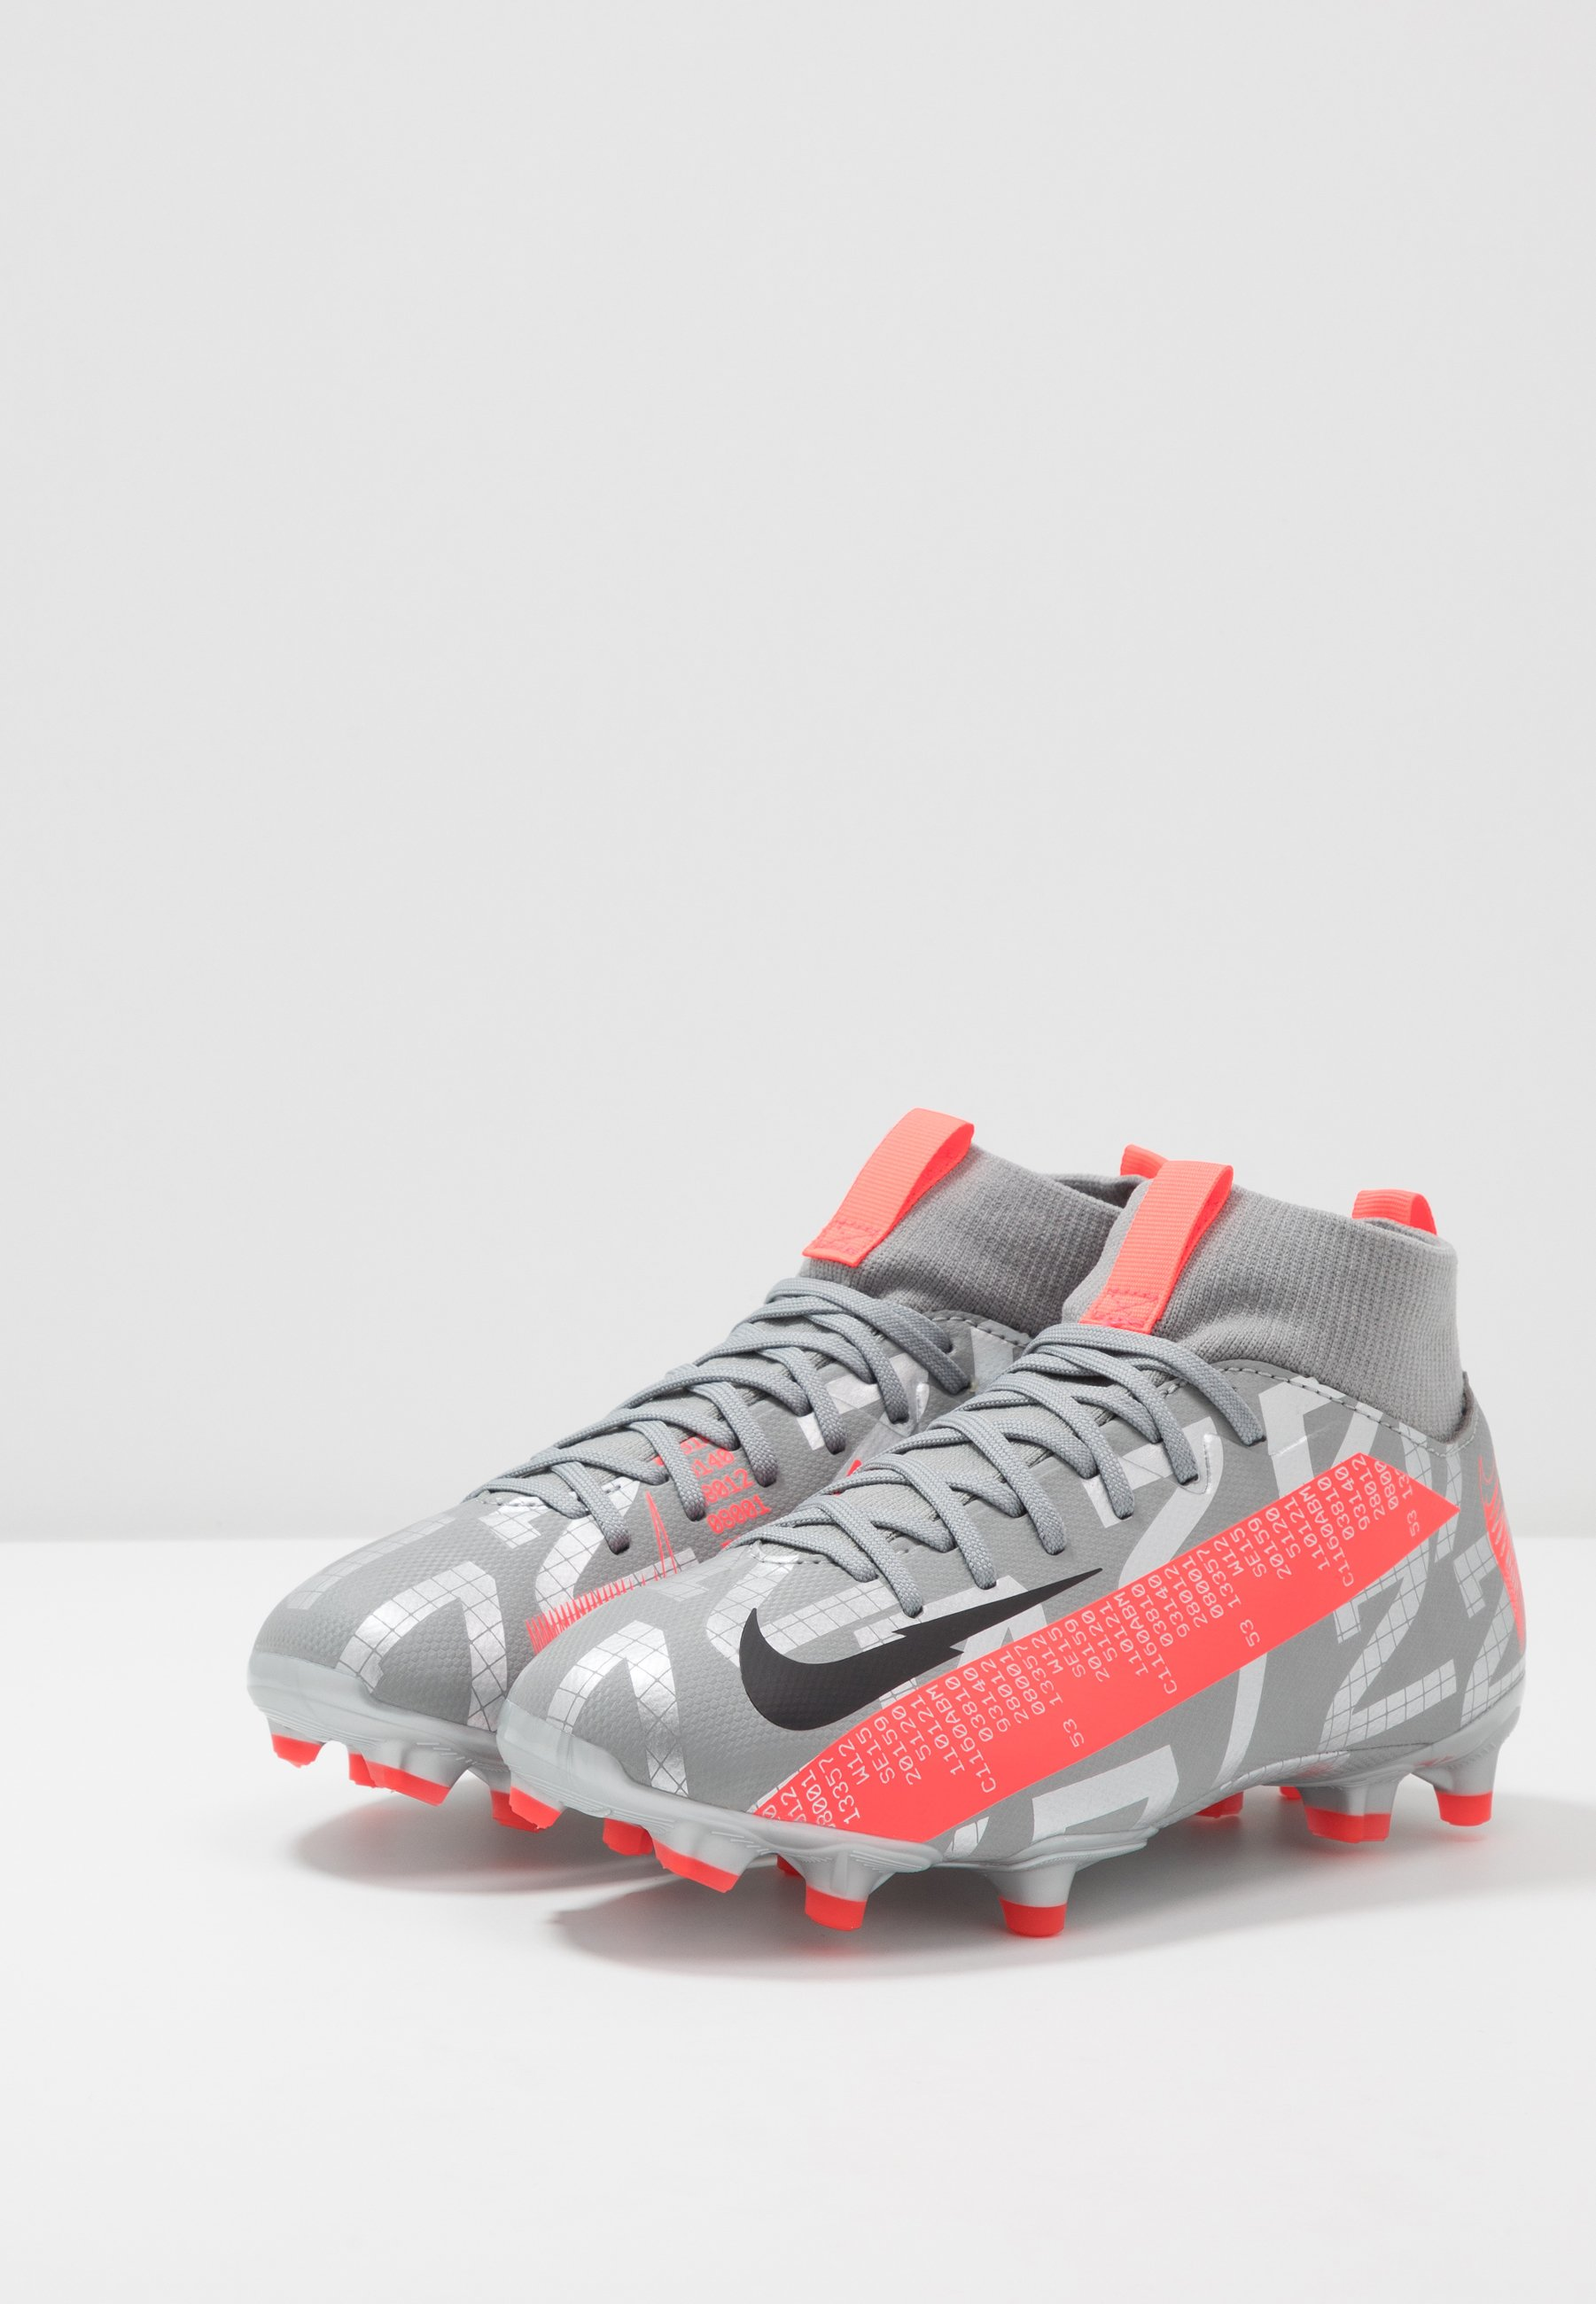 MERCURIAL 7 ACADEMY FGMG Chaussures de foot à crampons metallic bomber greyblackparticle grey